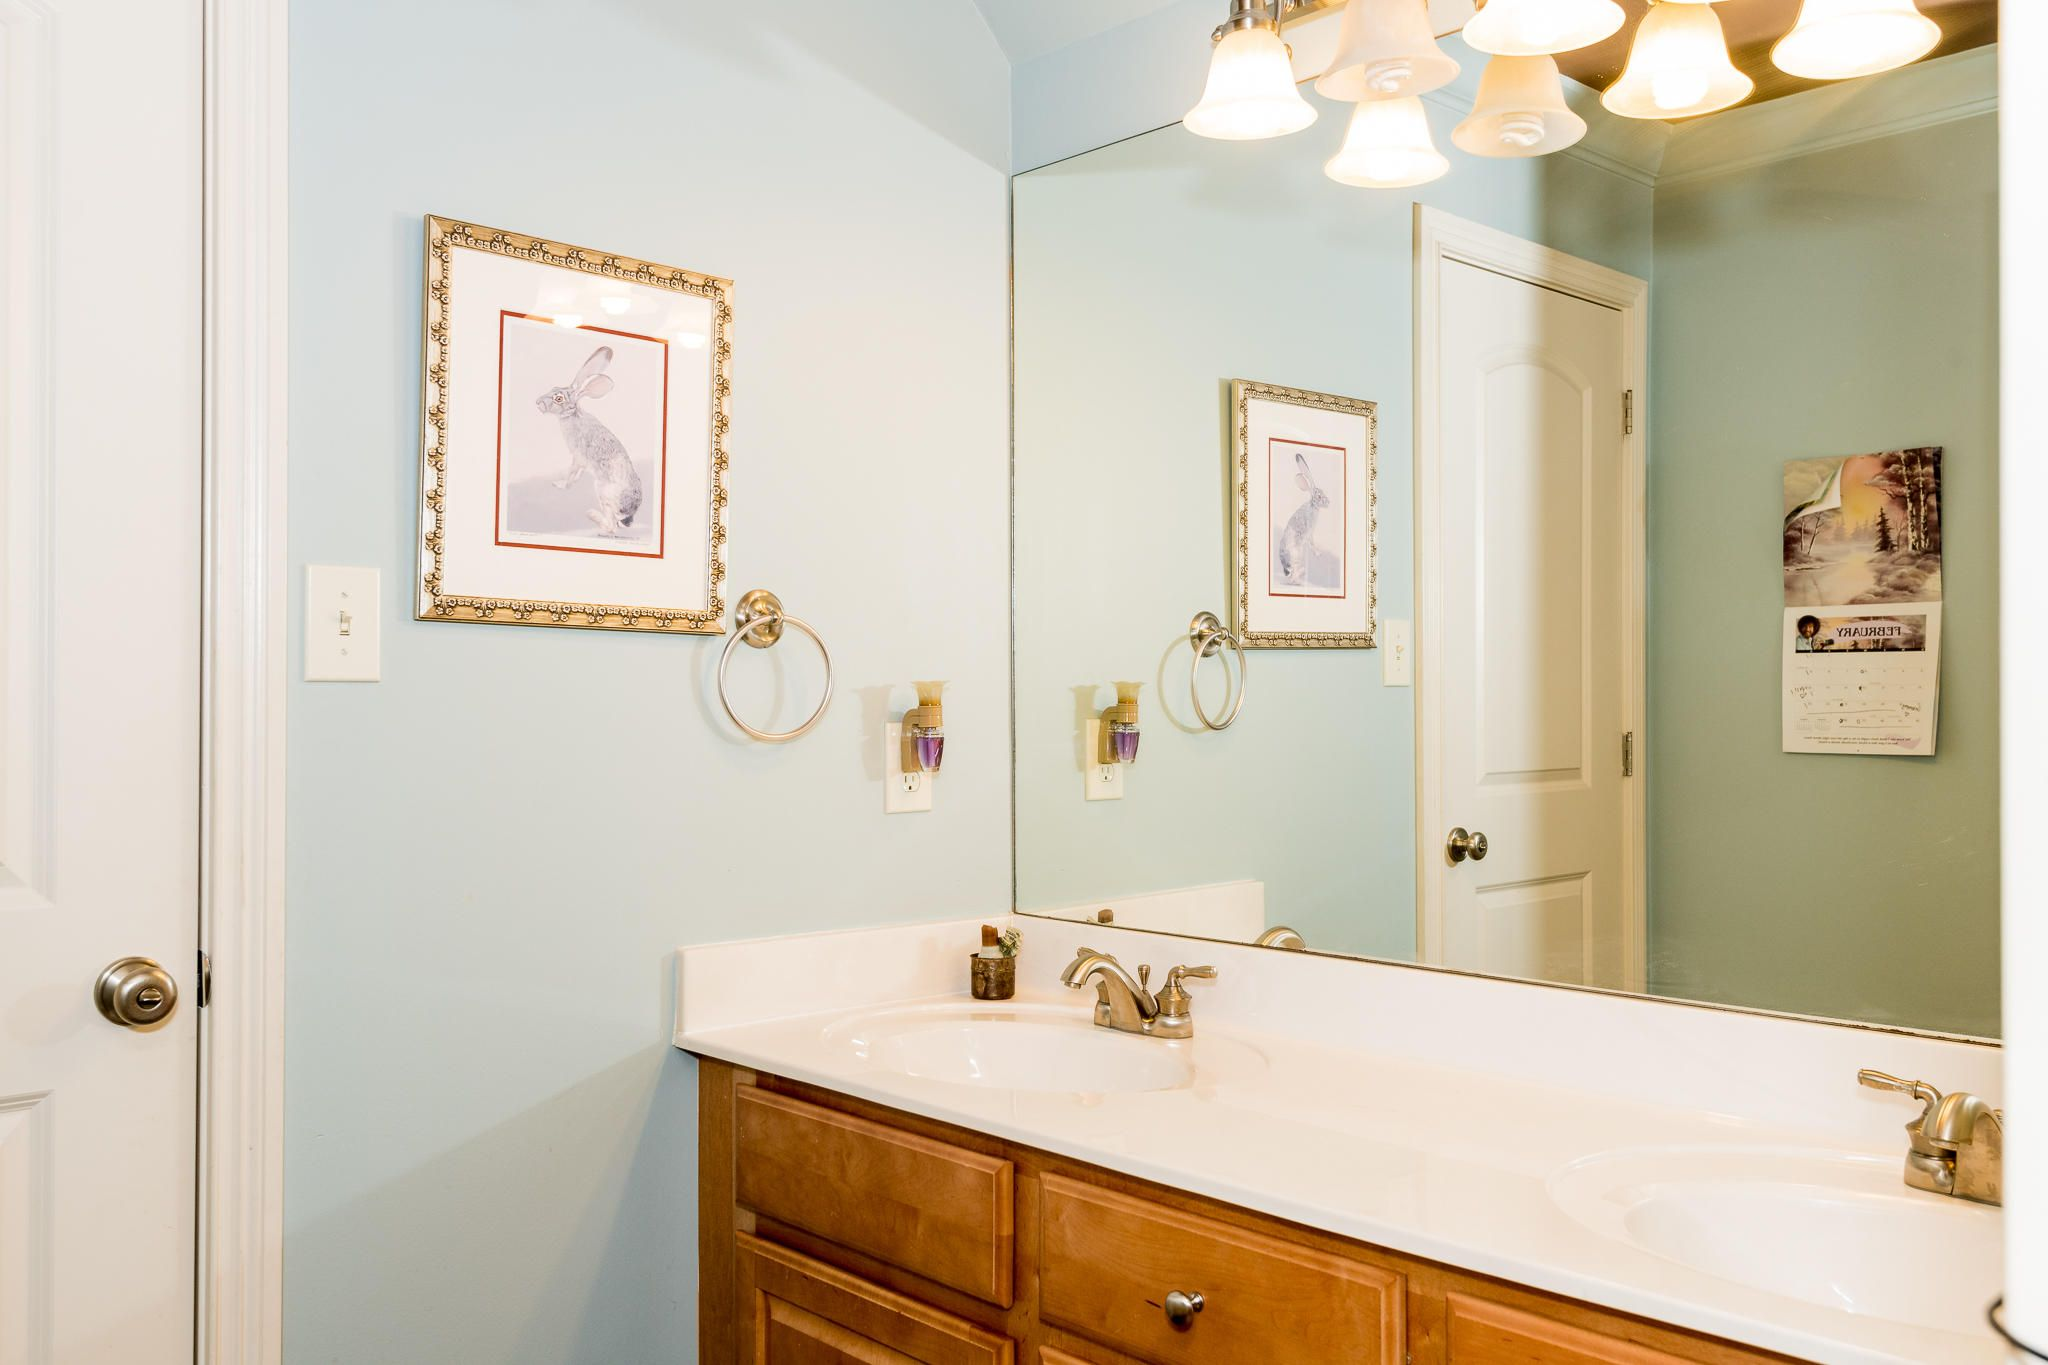 Jack and Jill bathroom shared with bedro